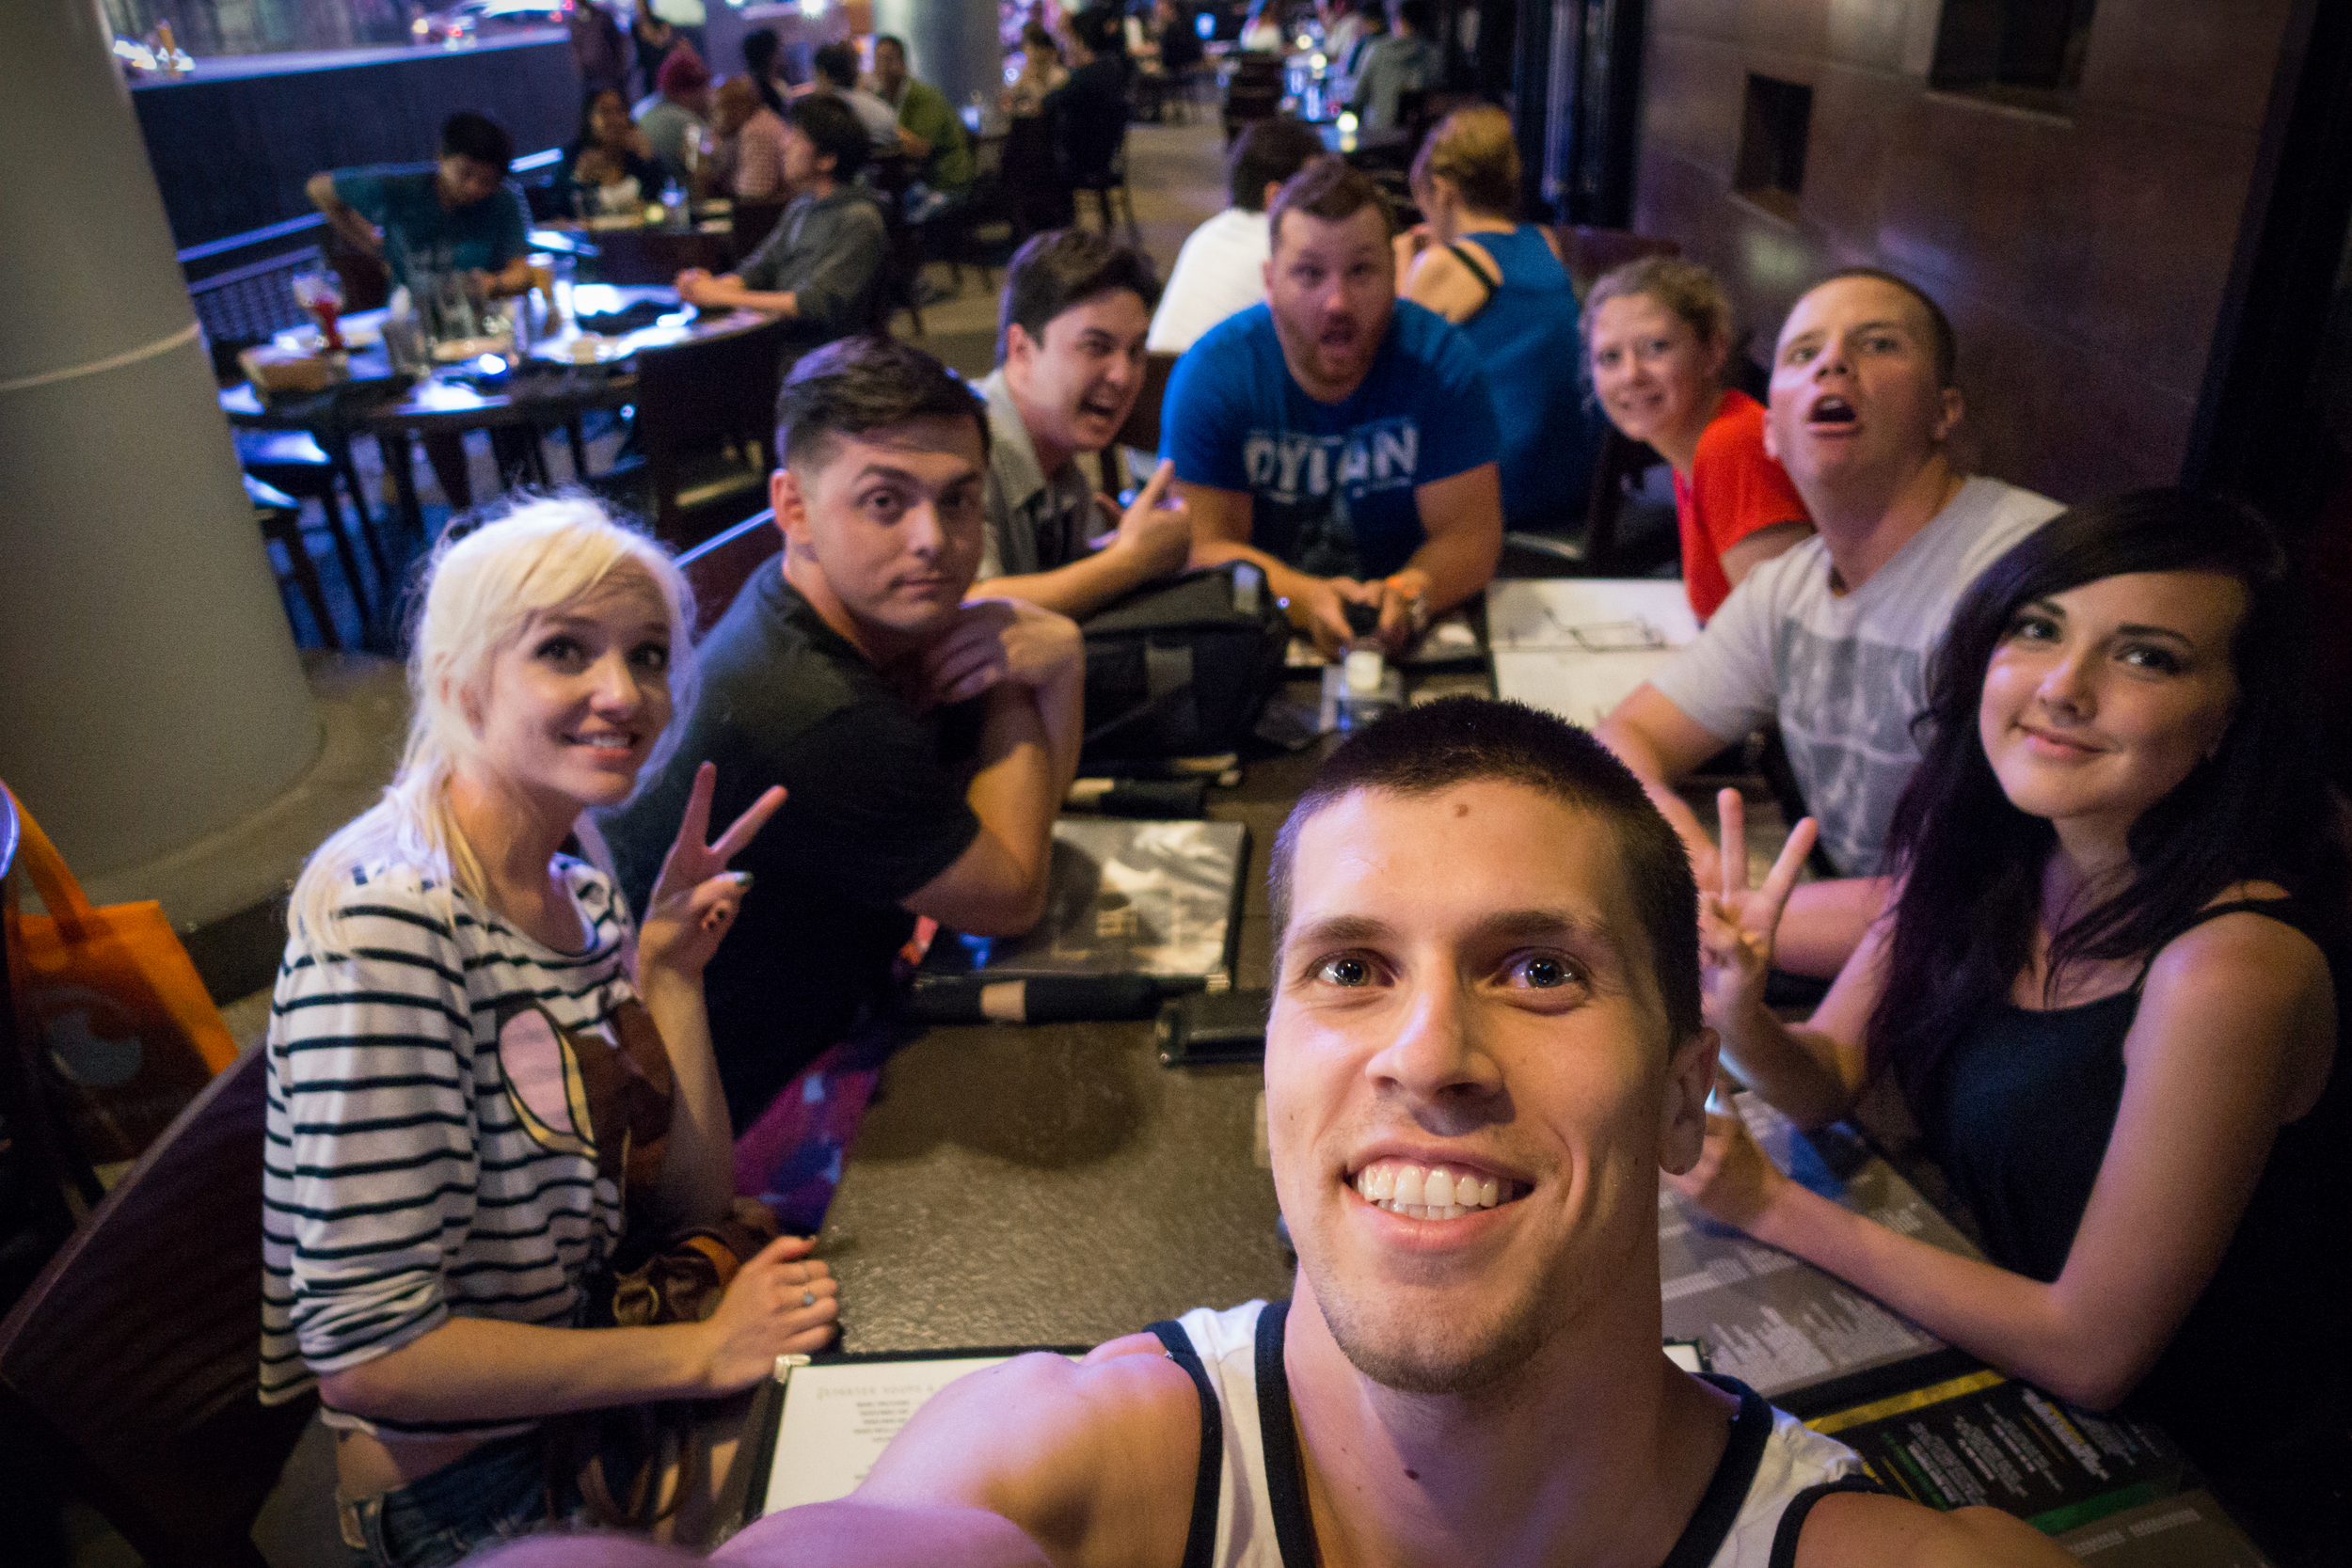 Dinner with these amazing people =]  Jordan, Lyz, Cody, Justin, Brandon, Darshelle and I